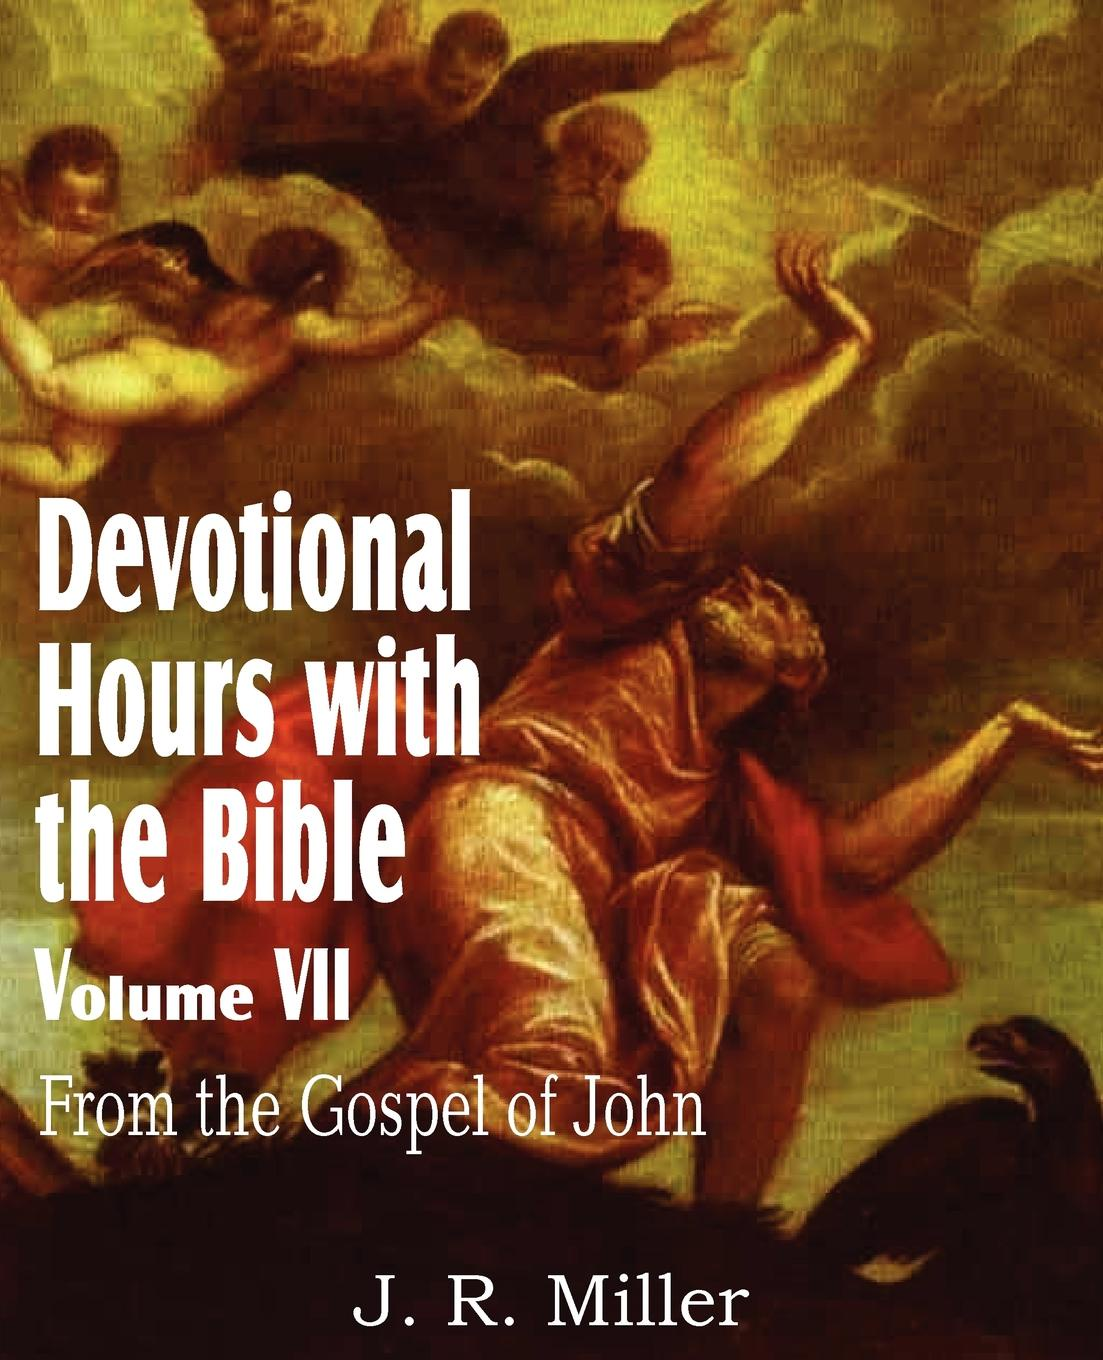 купить J. R. Miller Devotional Hours with the Bible Volume VII, from the Gospel of John по цене 1164 рублей